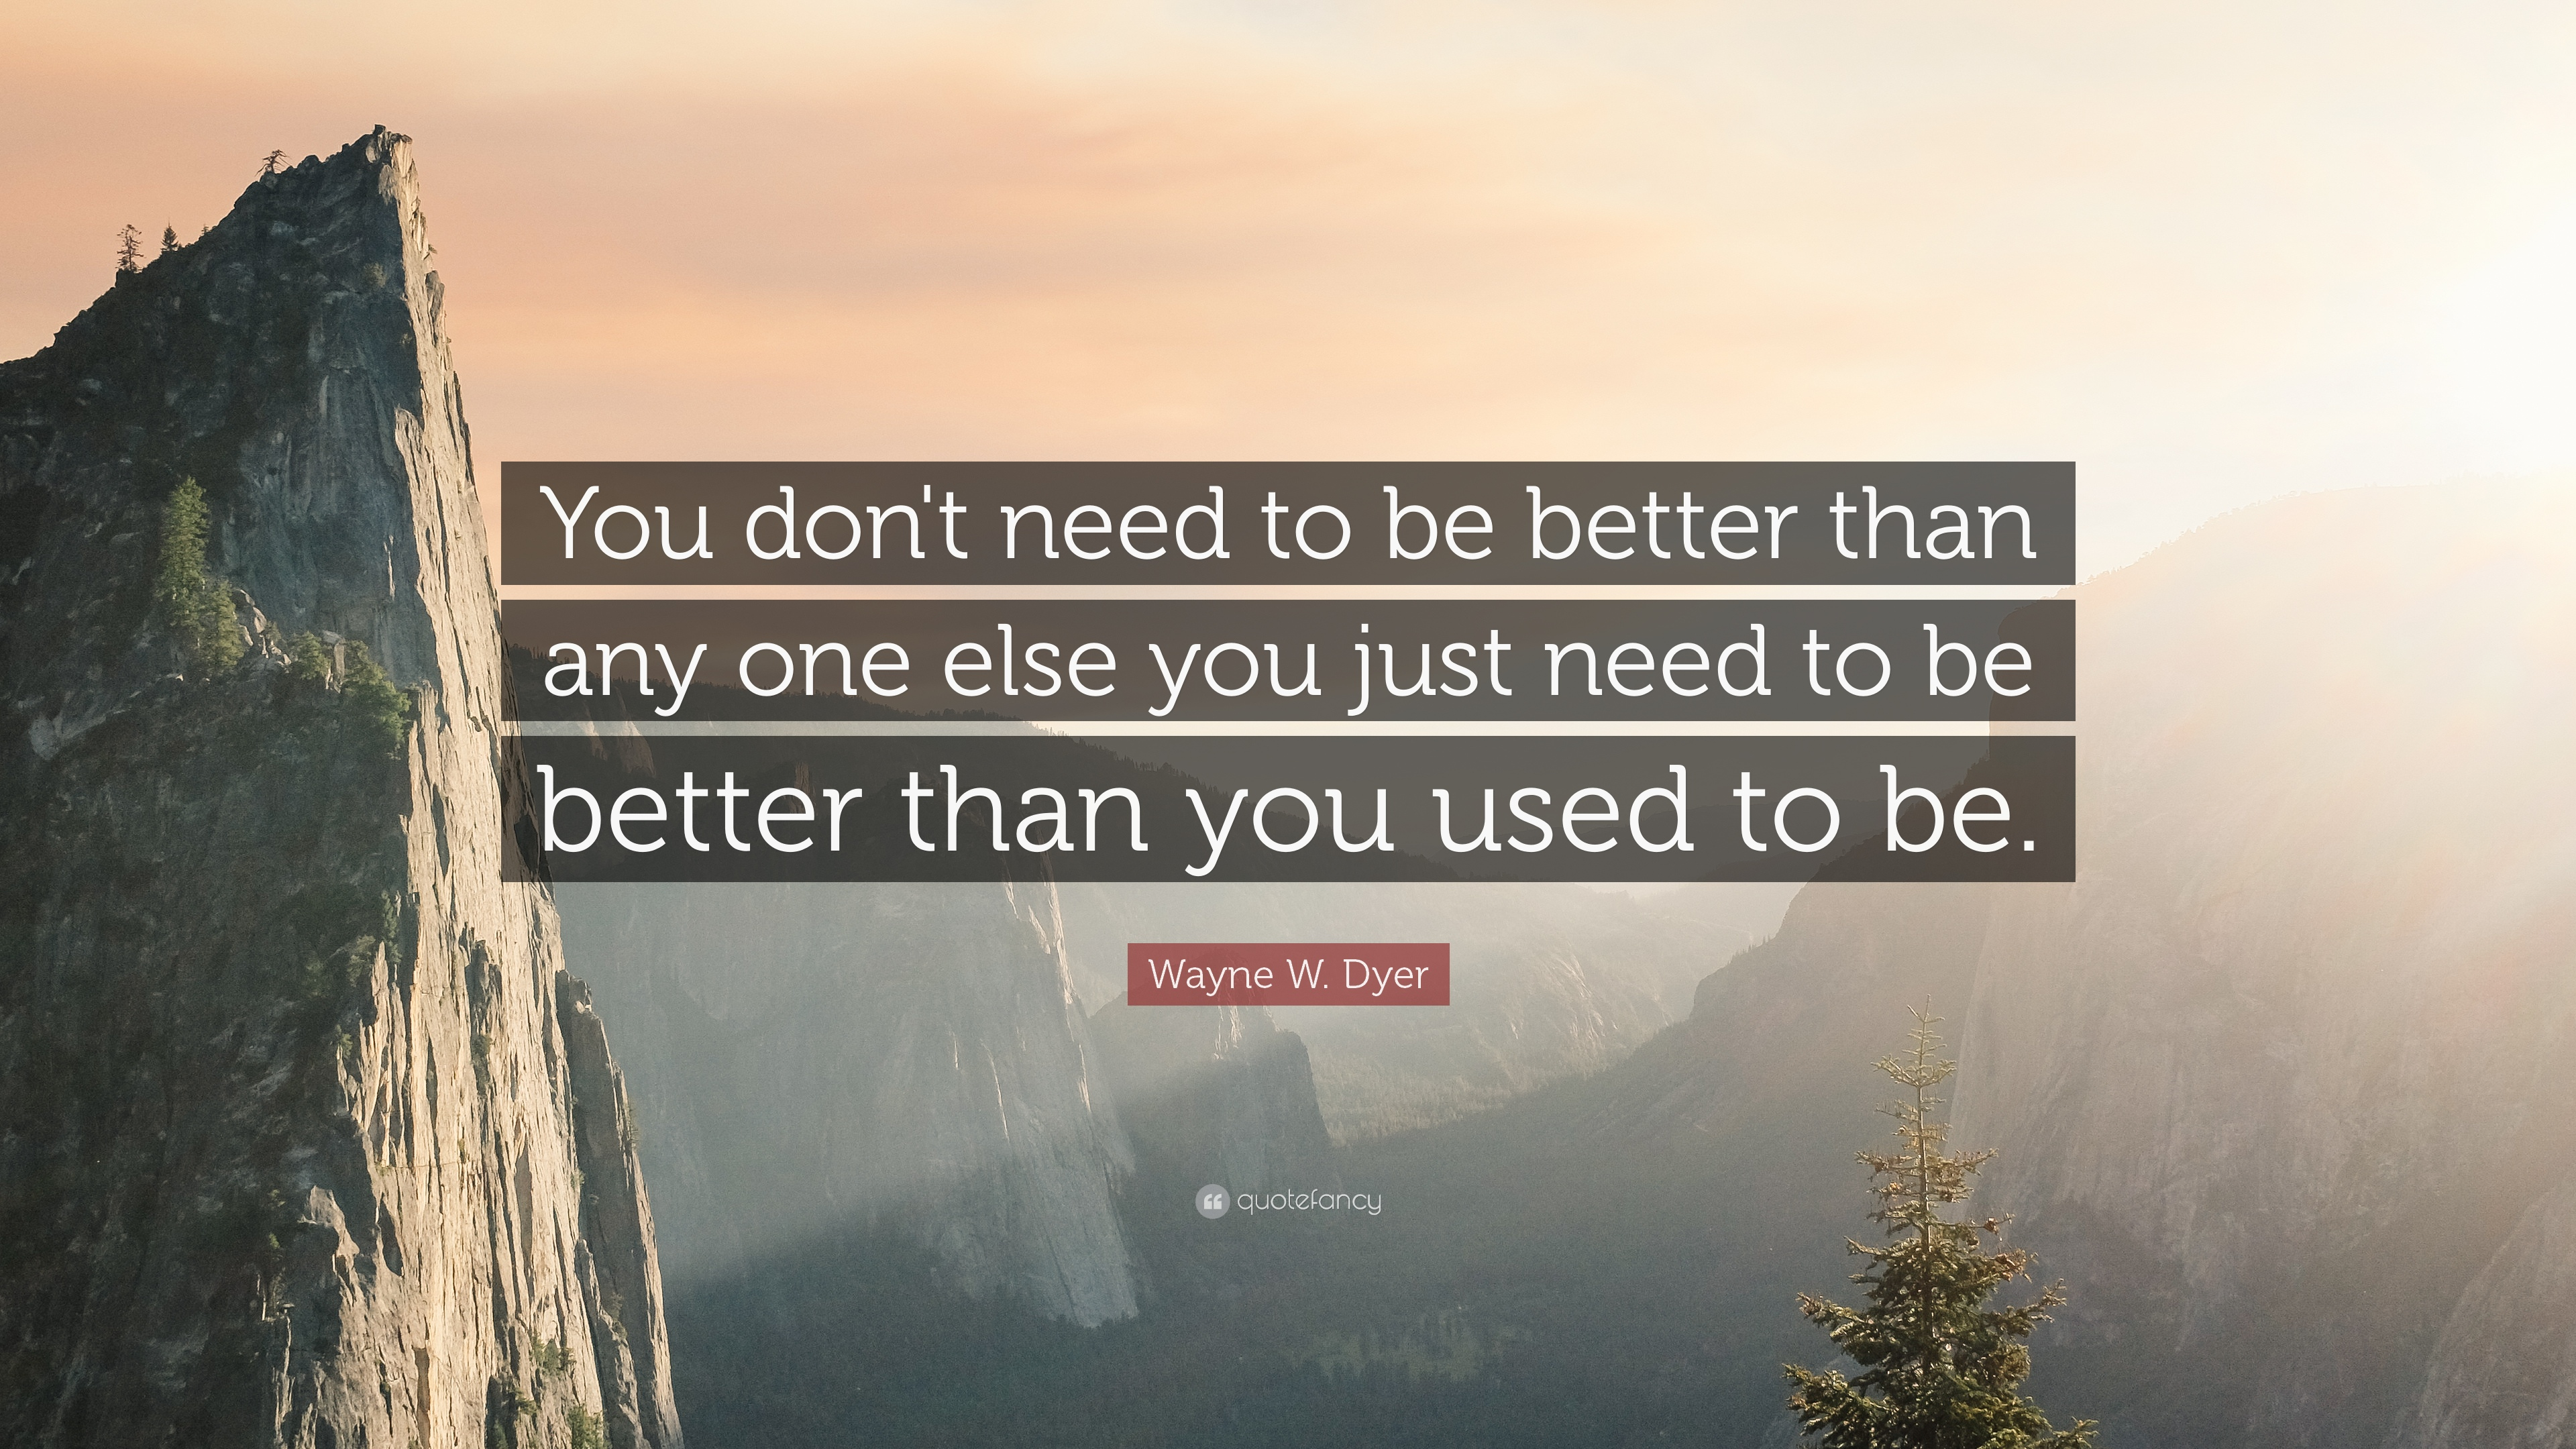 Wayne W. Dyer Quote: U201cYou Donu0027t Need To Be Better Than